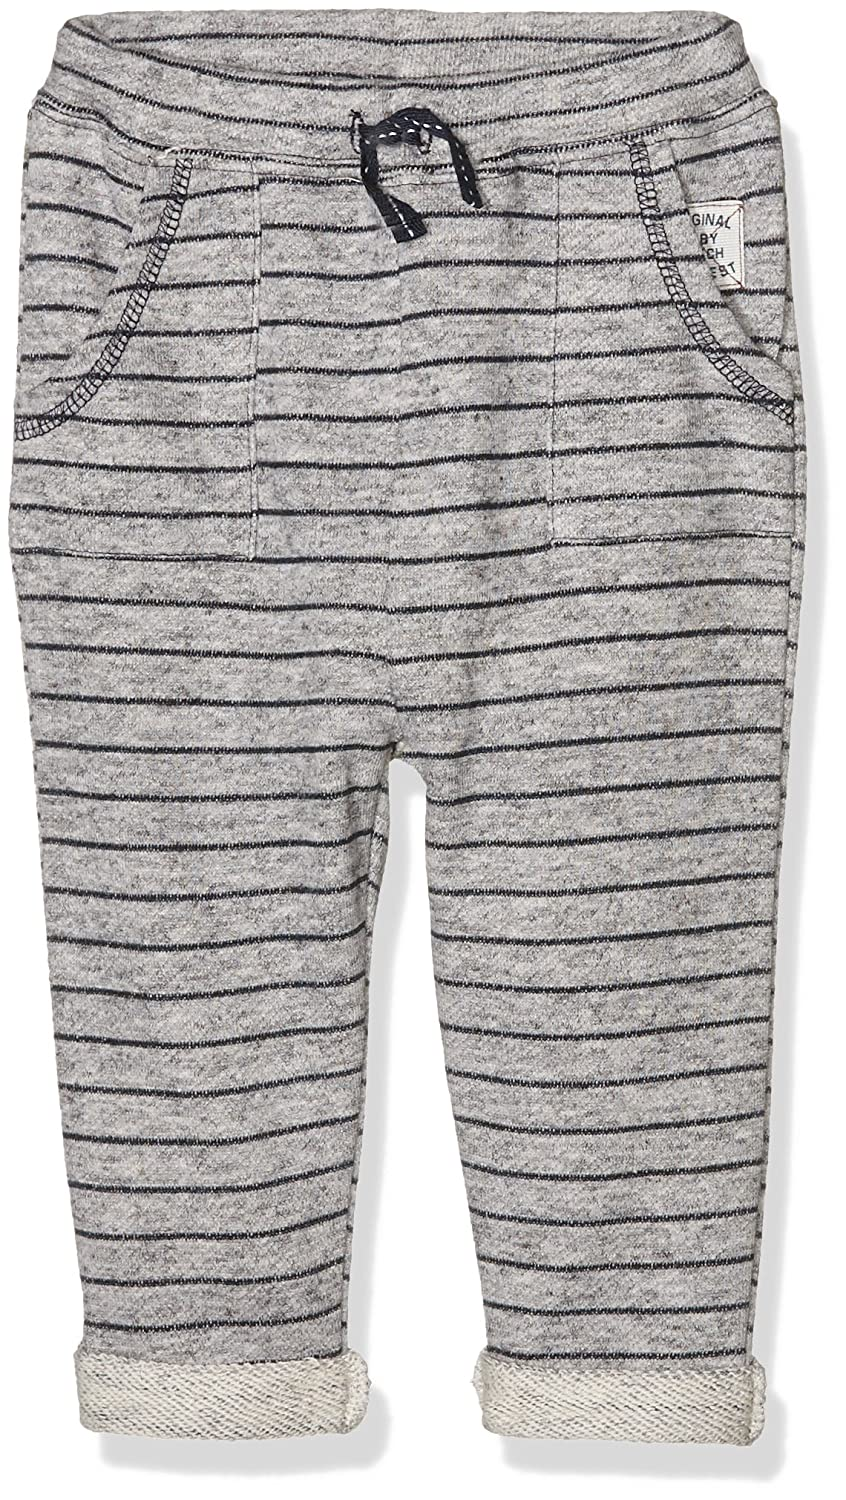 Pumpkin Patch Striped Jogger, Pantalon de Sport Bébé Garçon Gris (Athletic Marle) 3-6 Mois W6BB60004